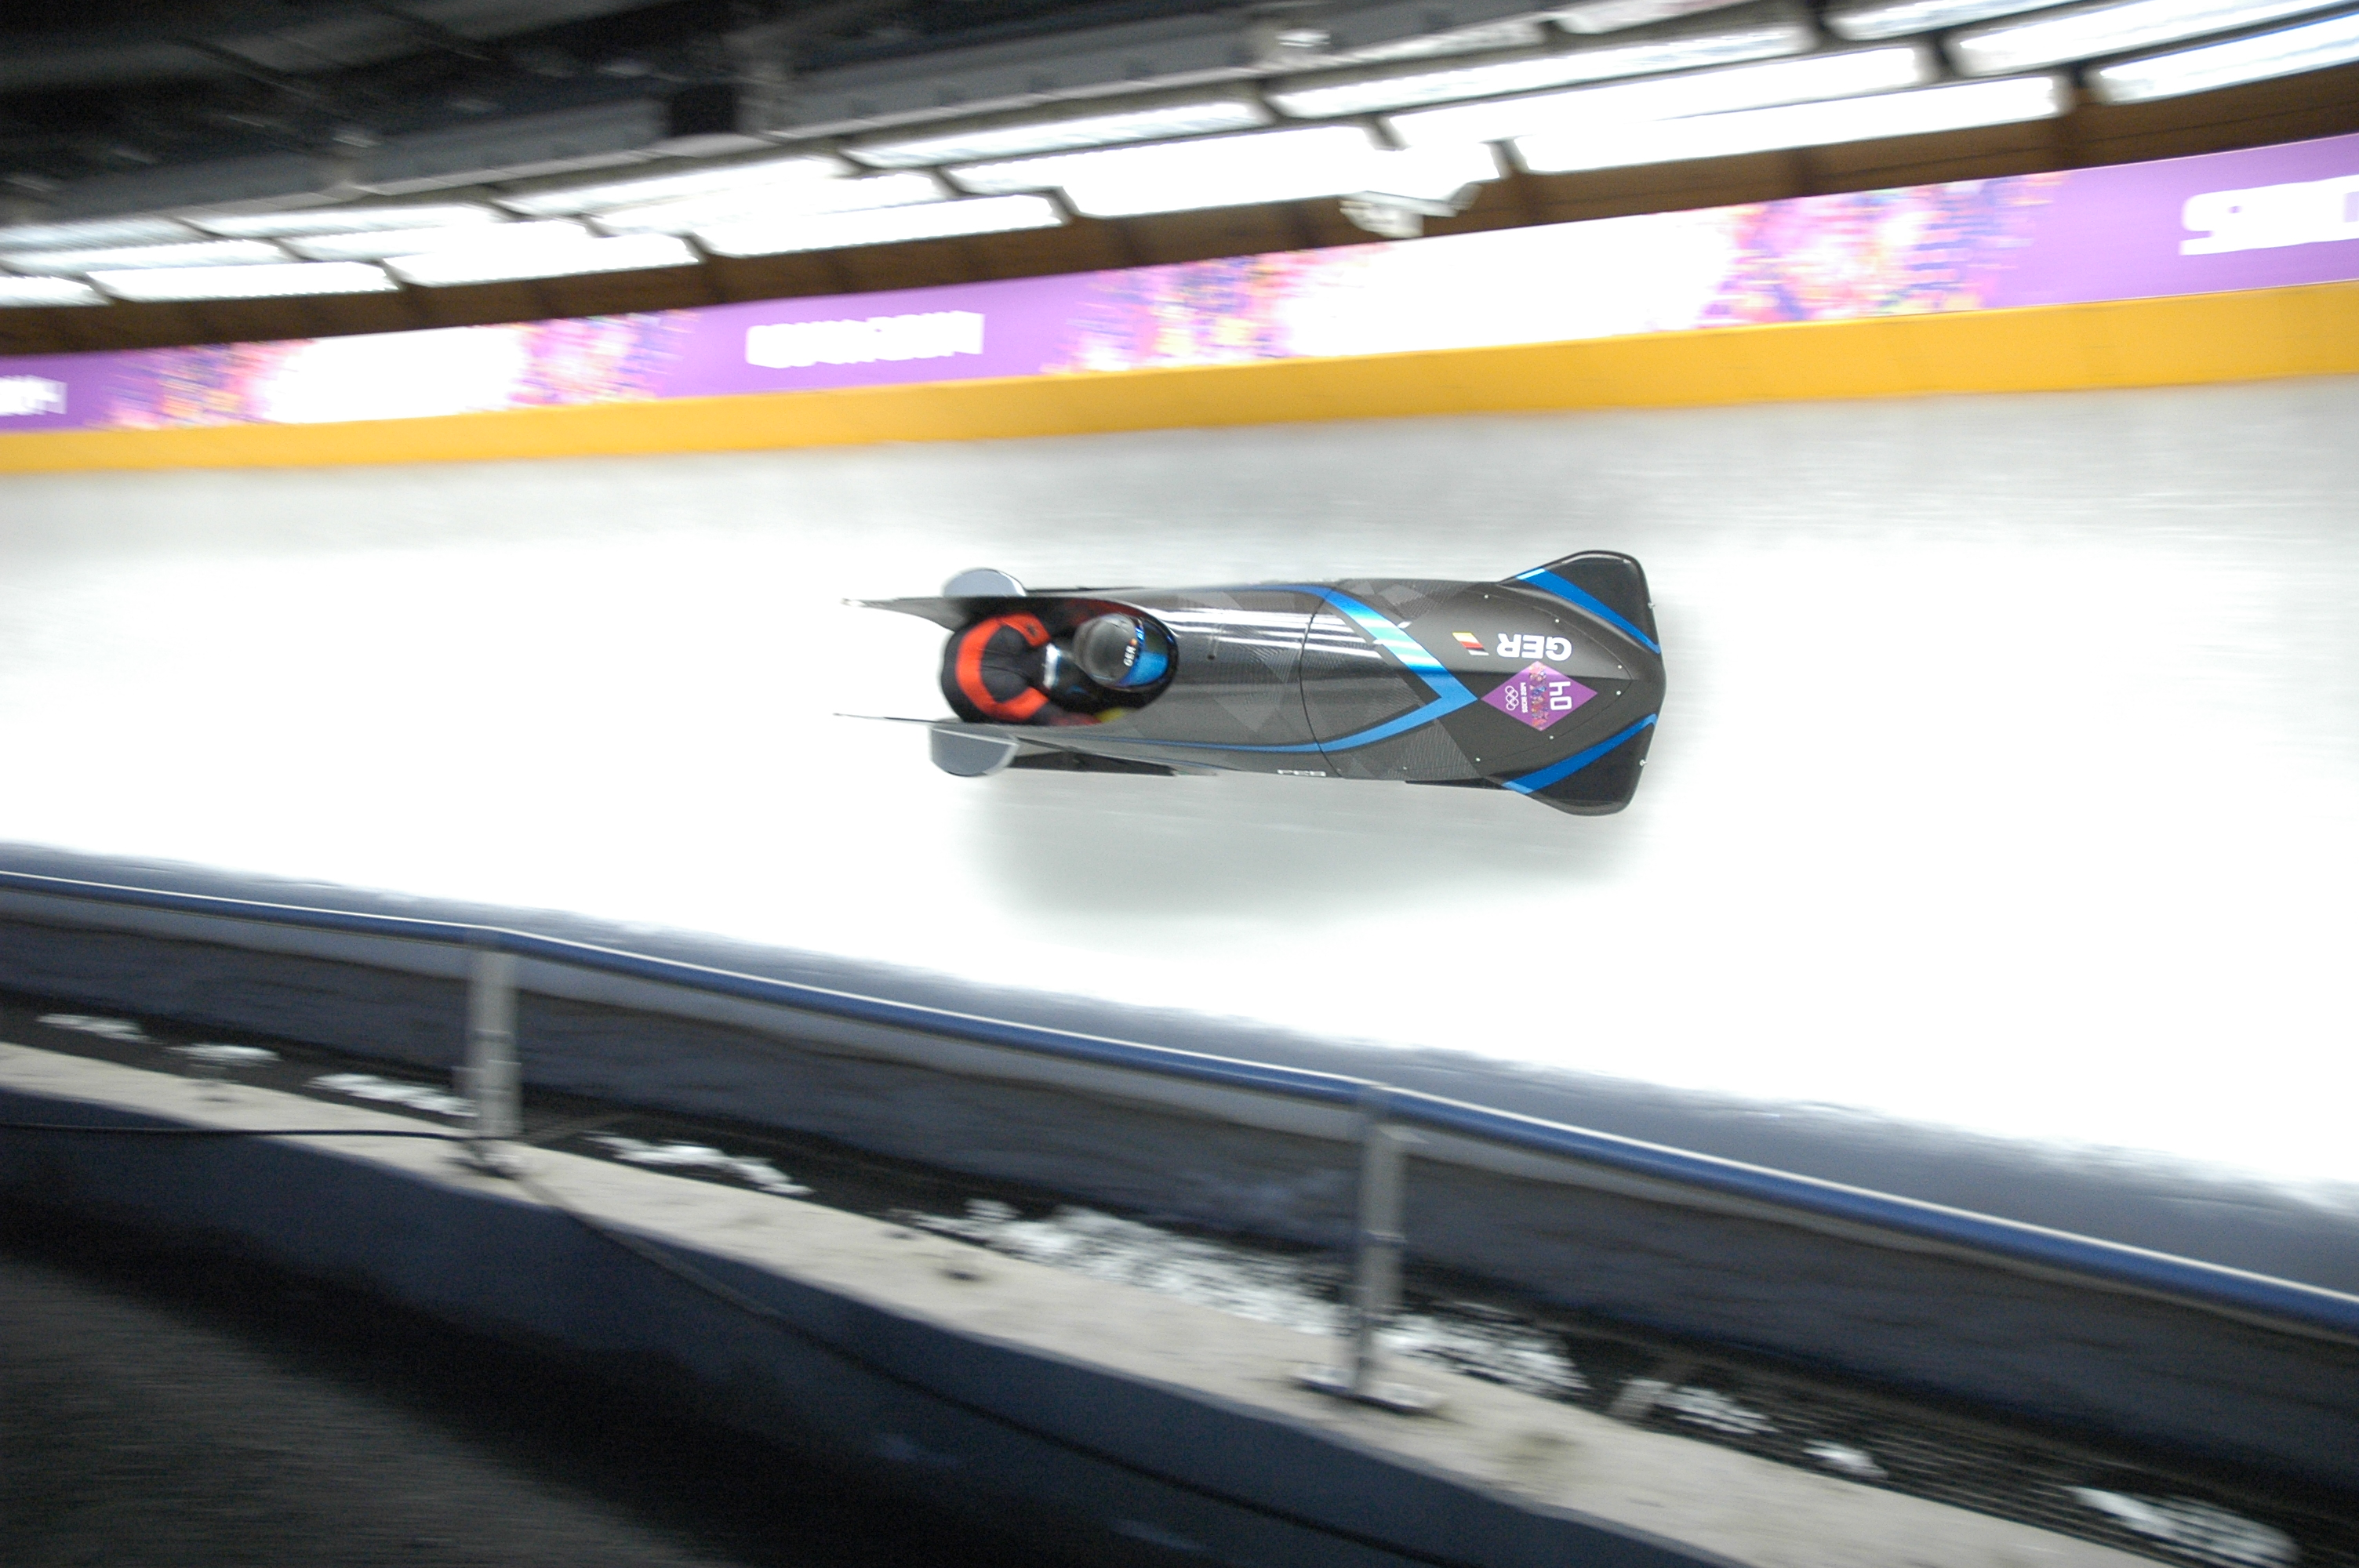 The most injury-prone events you'll see at this year's Winter Olympics.